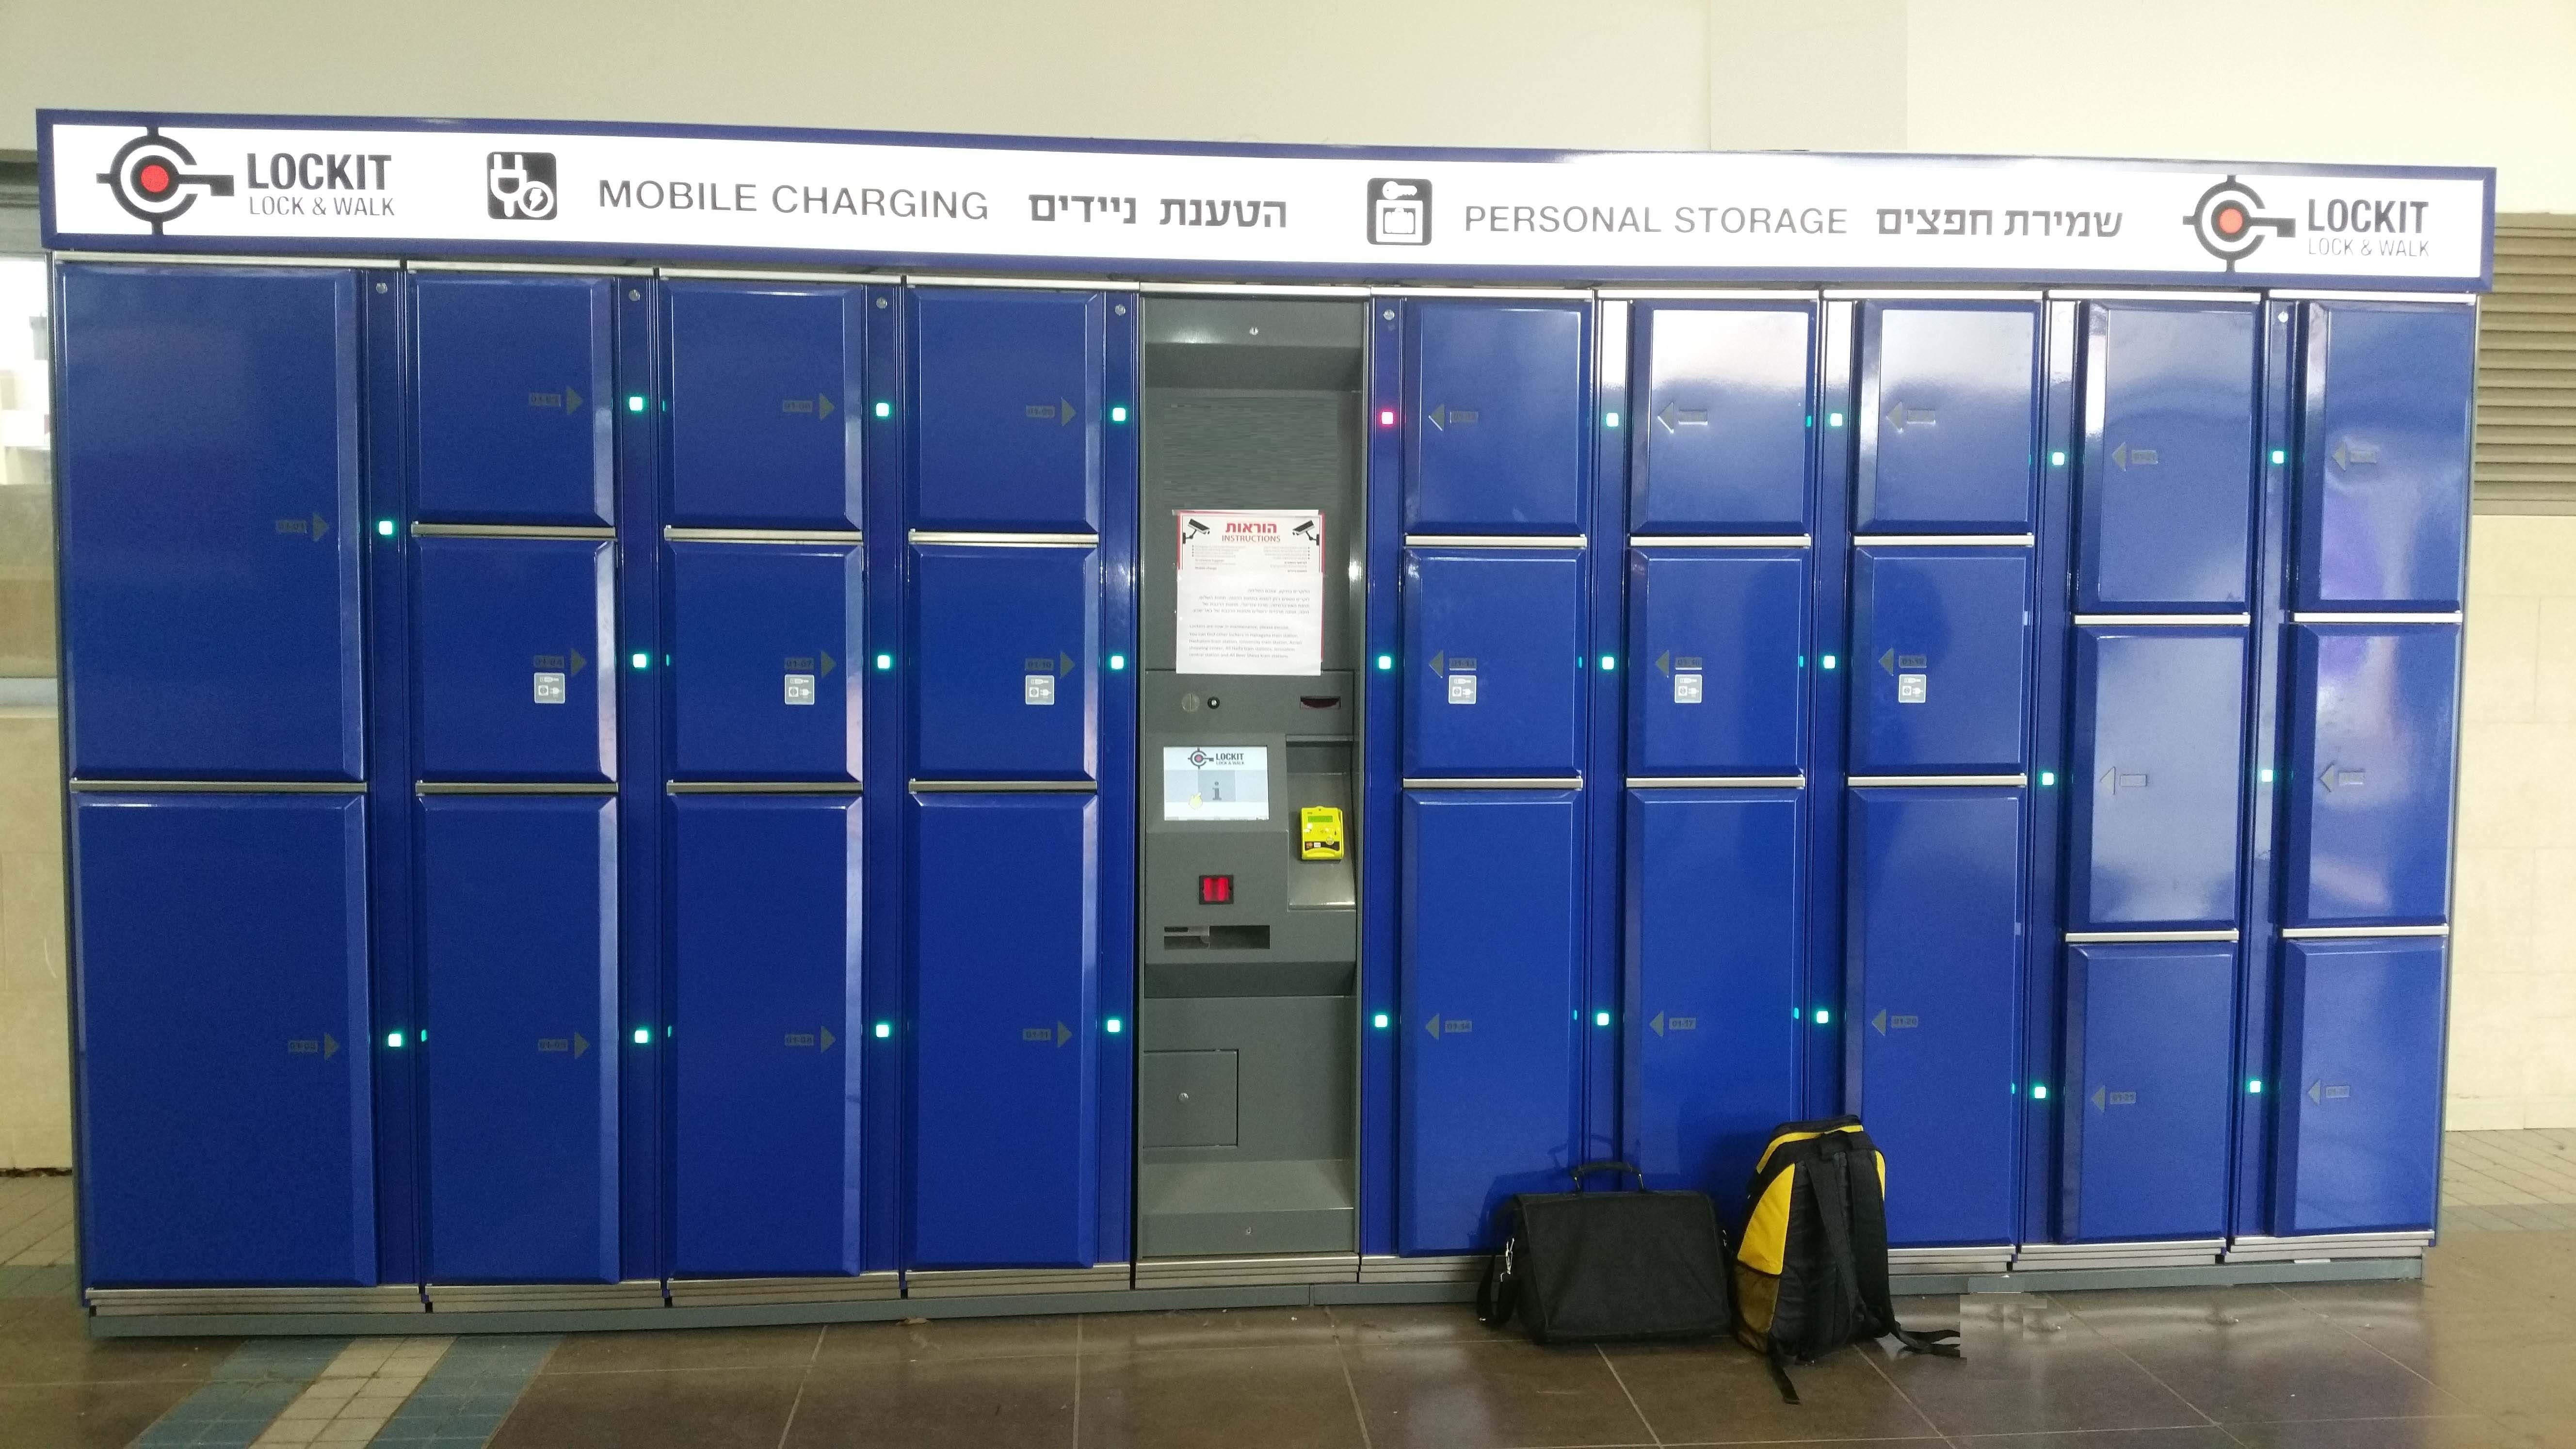 Smart lockers Locksafe5 – keyless locker system indoors for storage of luggage, electronic devices and other equipment.